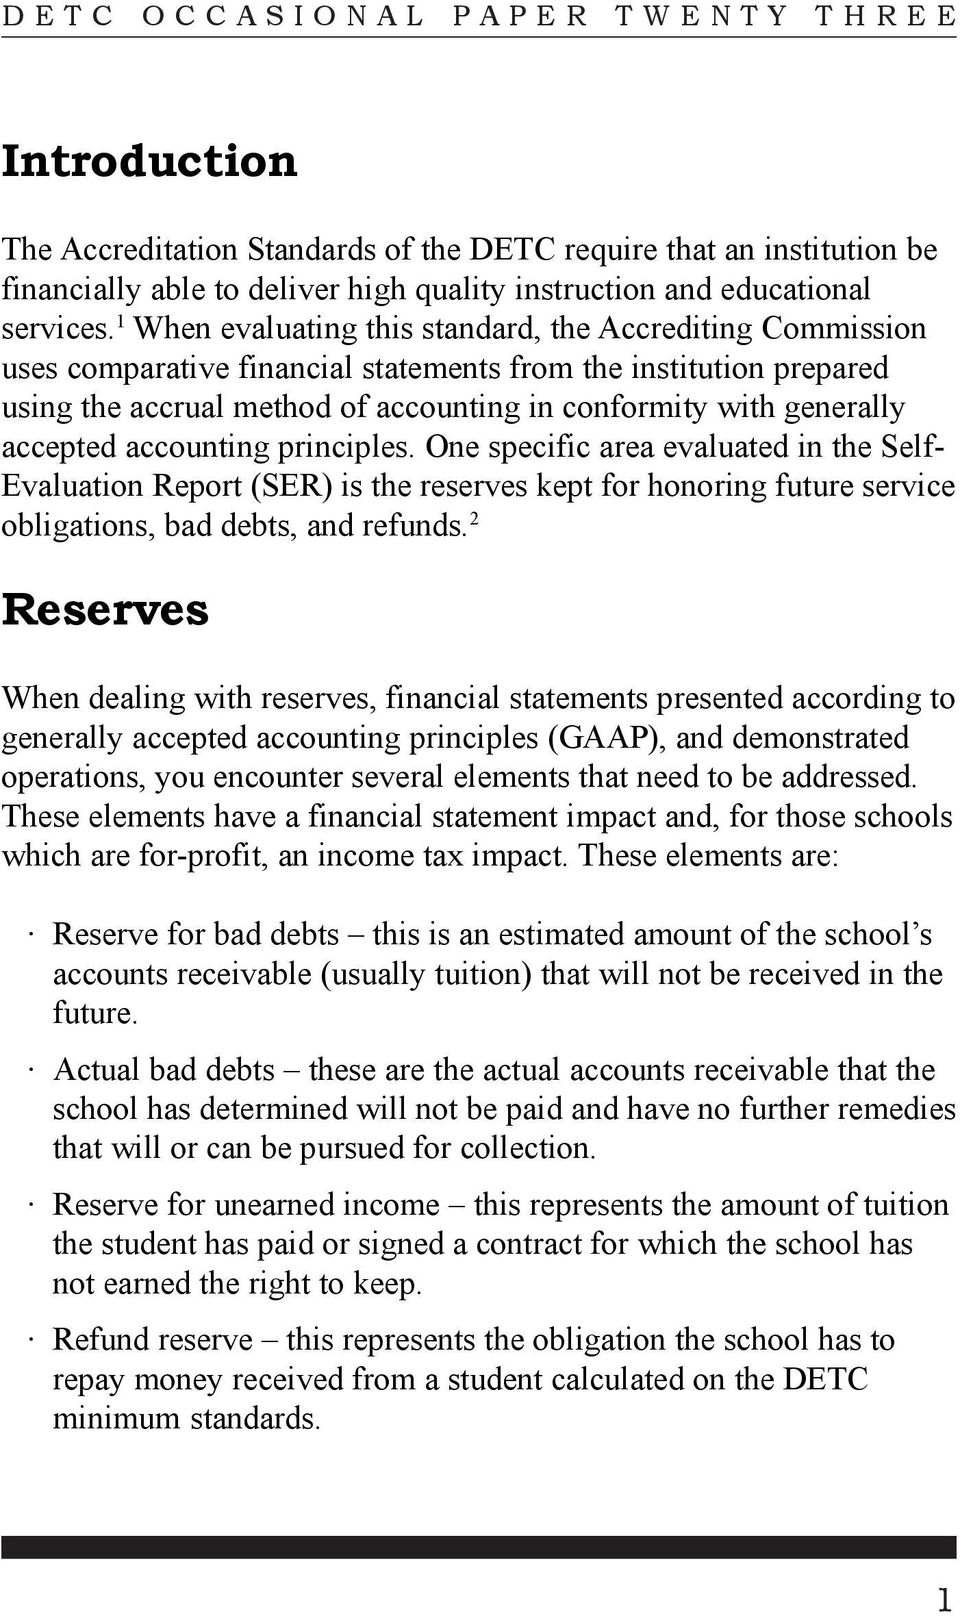 accepted accounting principles. One specific area evaluated in the Self- Evaluation Report (SER) is the reserves kept for honoring future service obligations, bad debts, and refunds.